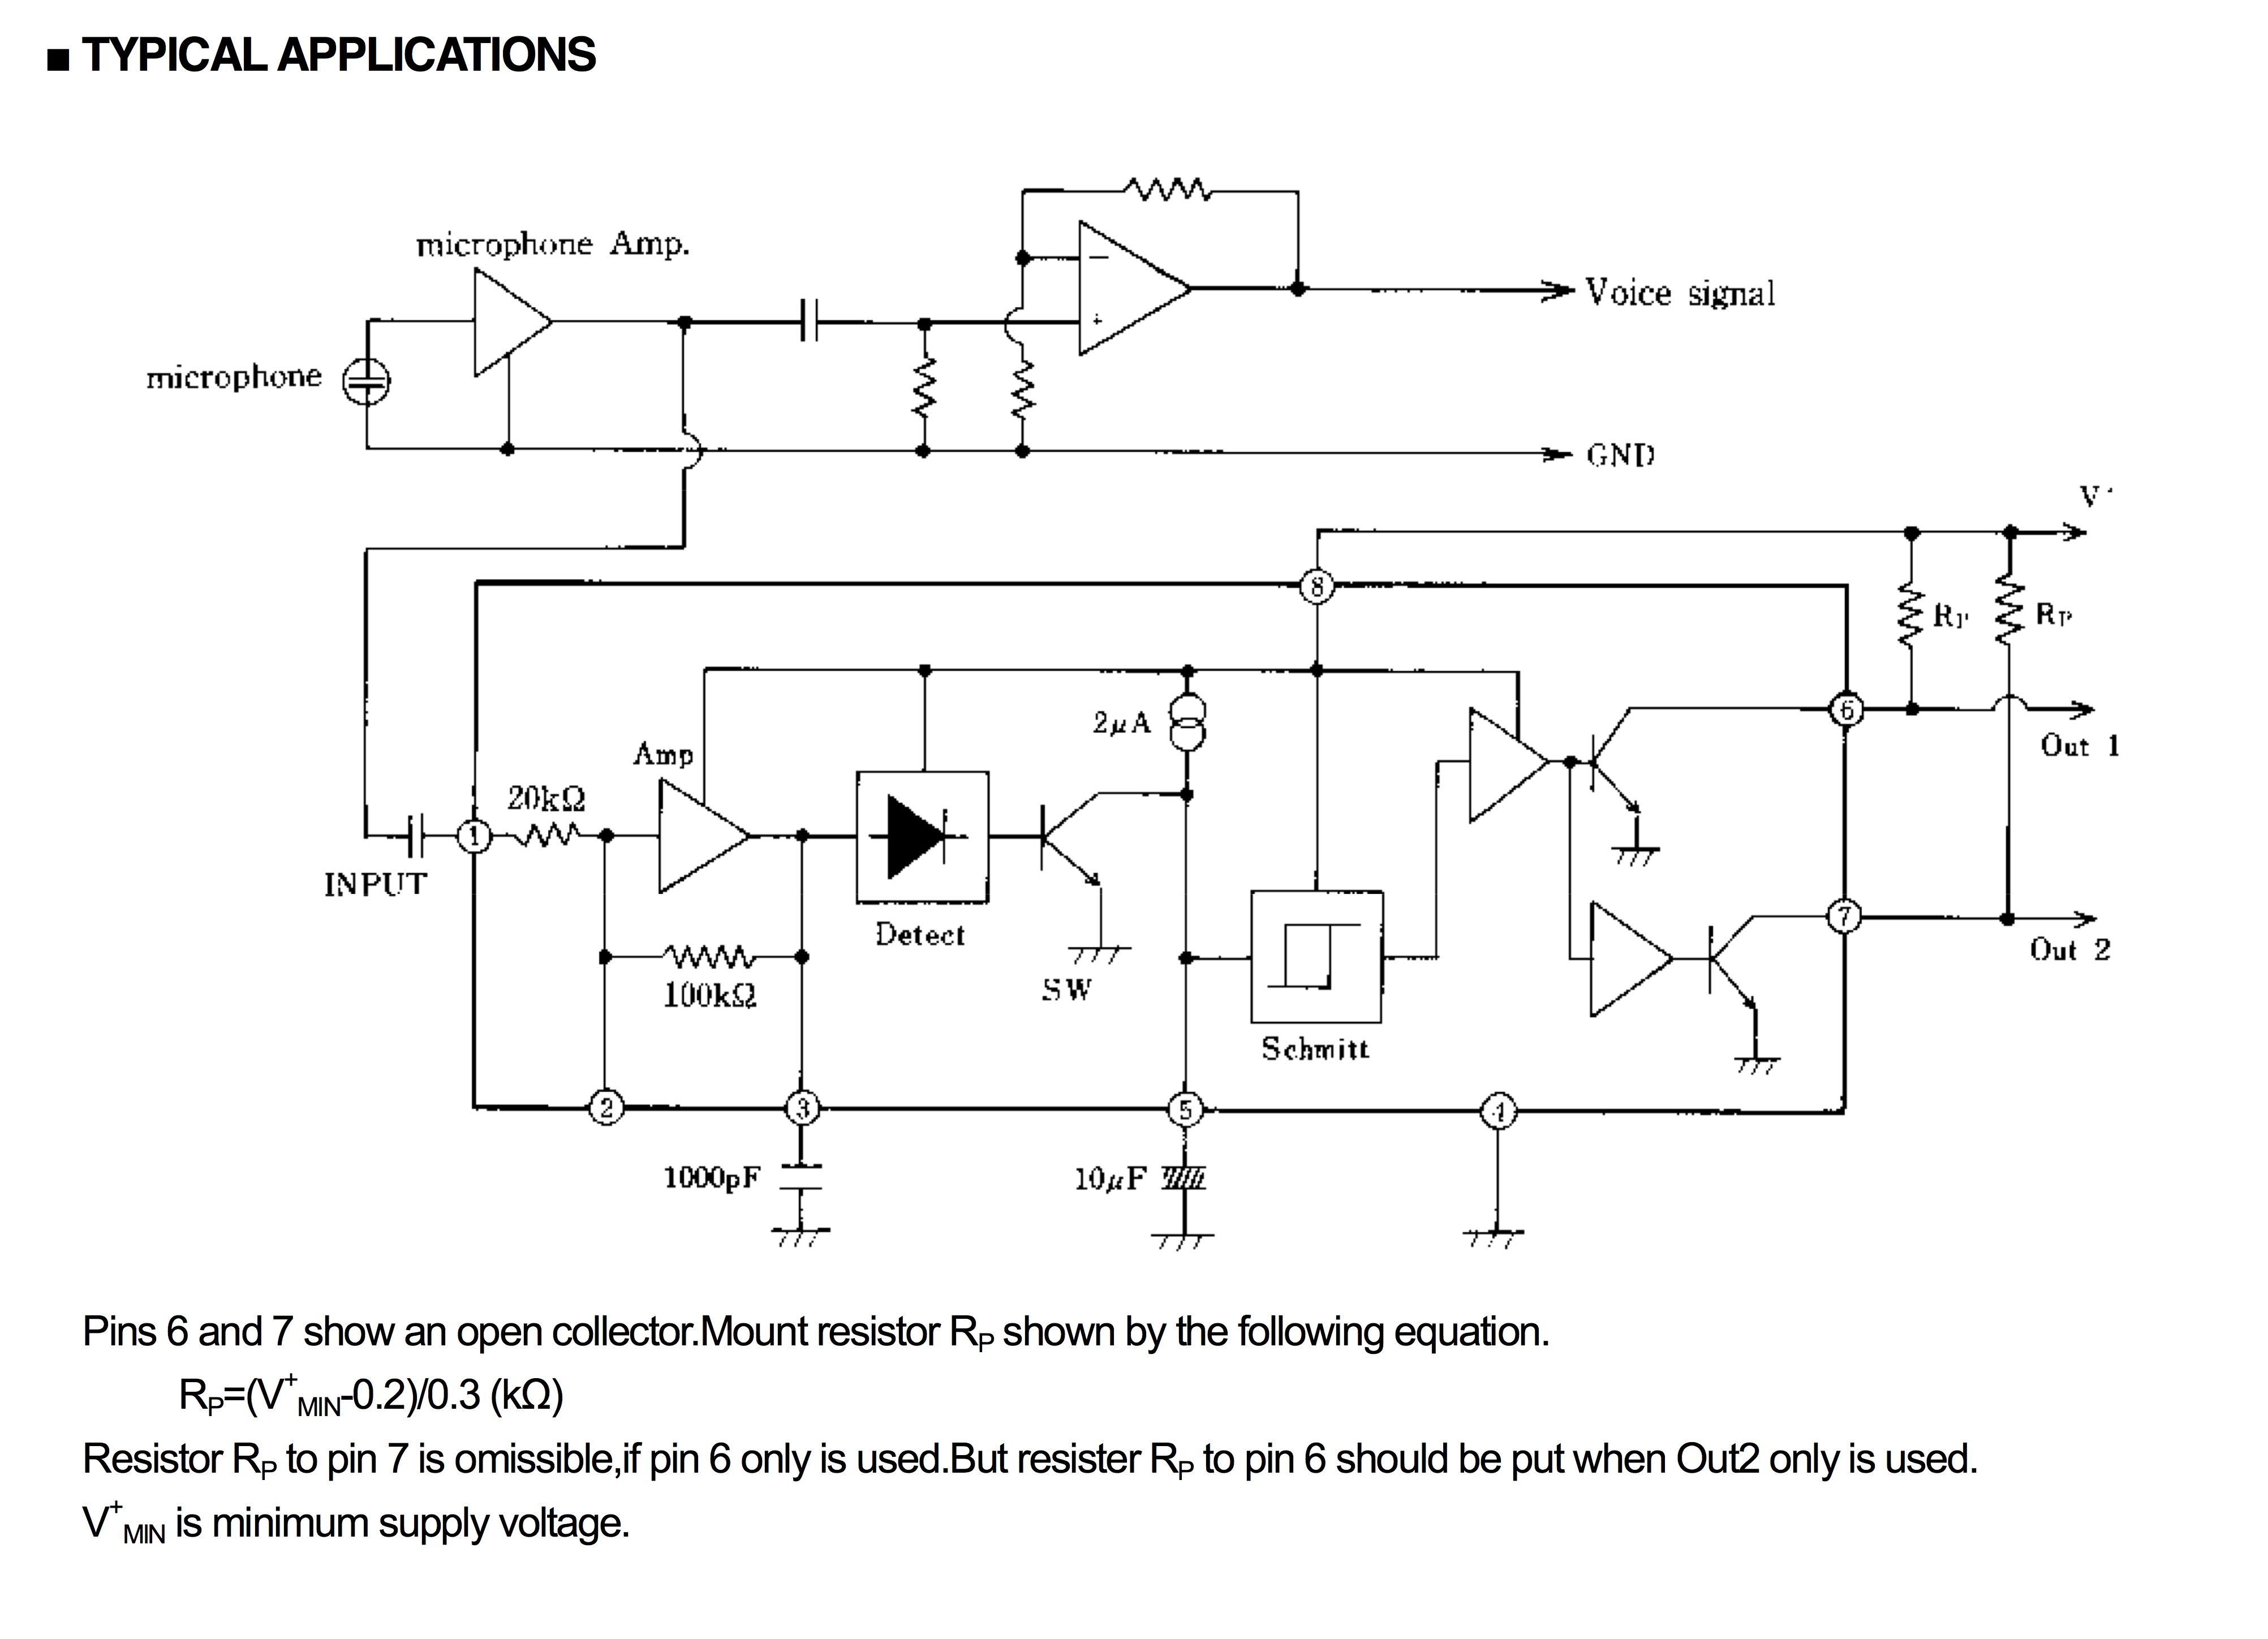 Speaker Symbol Circuit Switches Njm2072d Application Questions For Audio